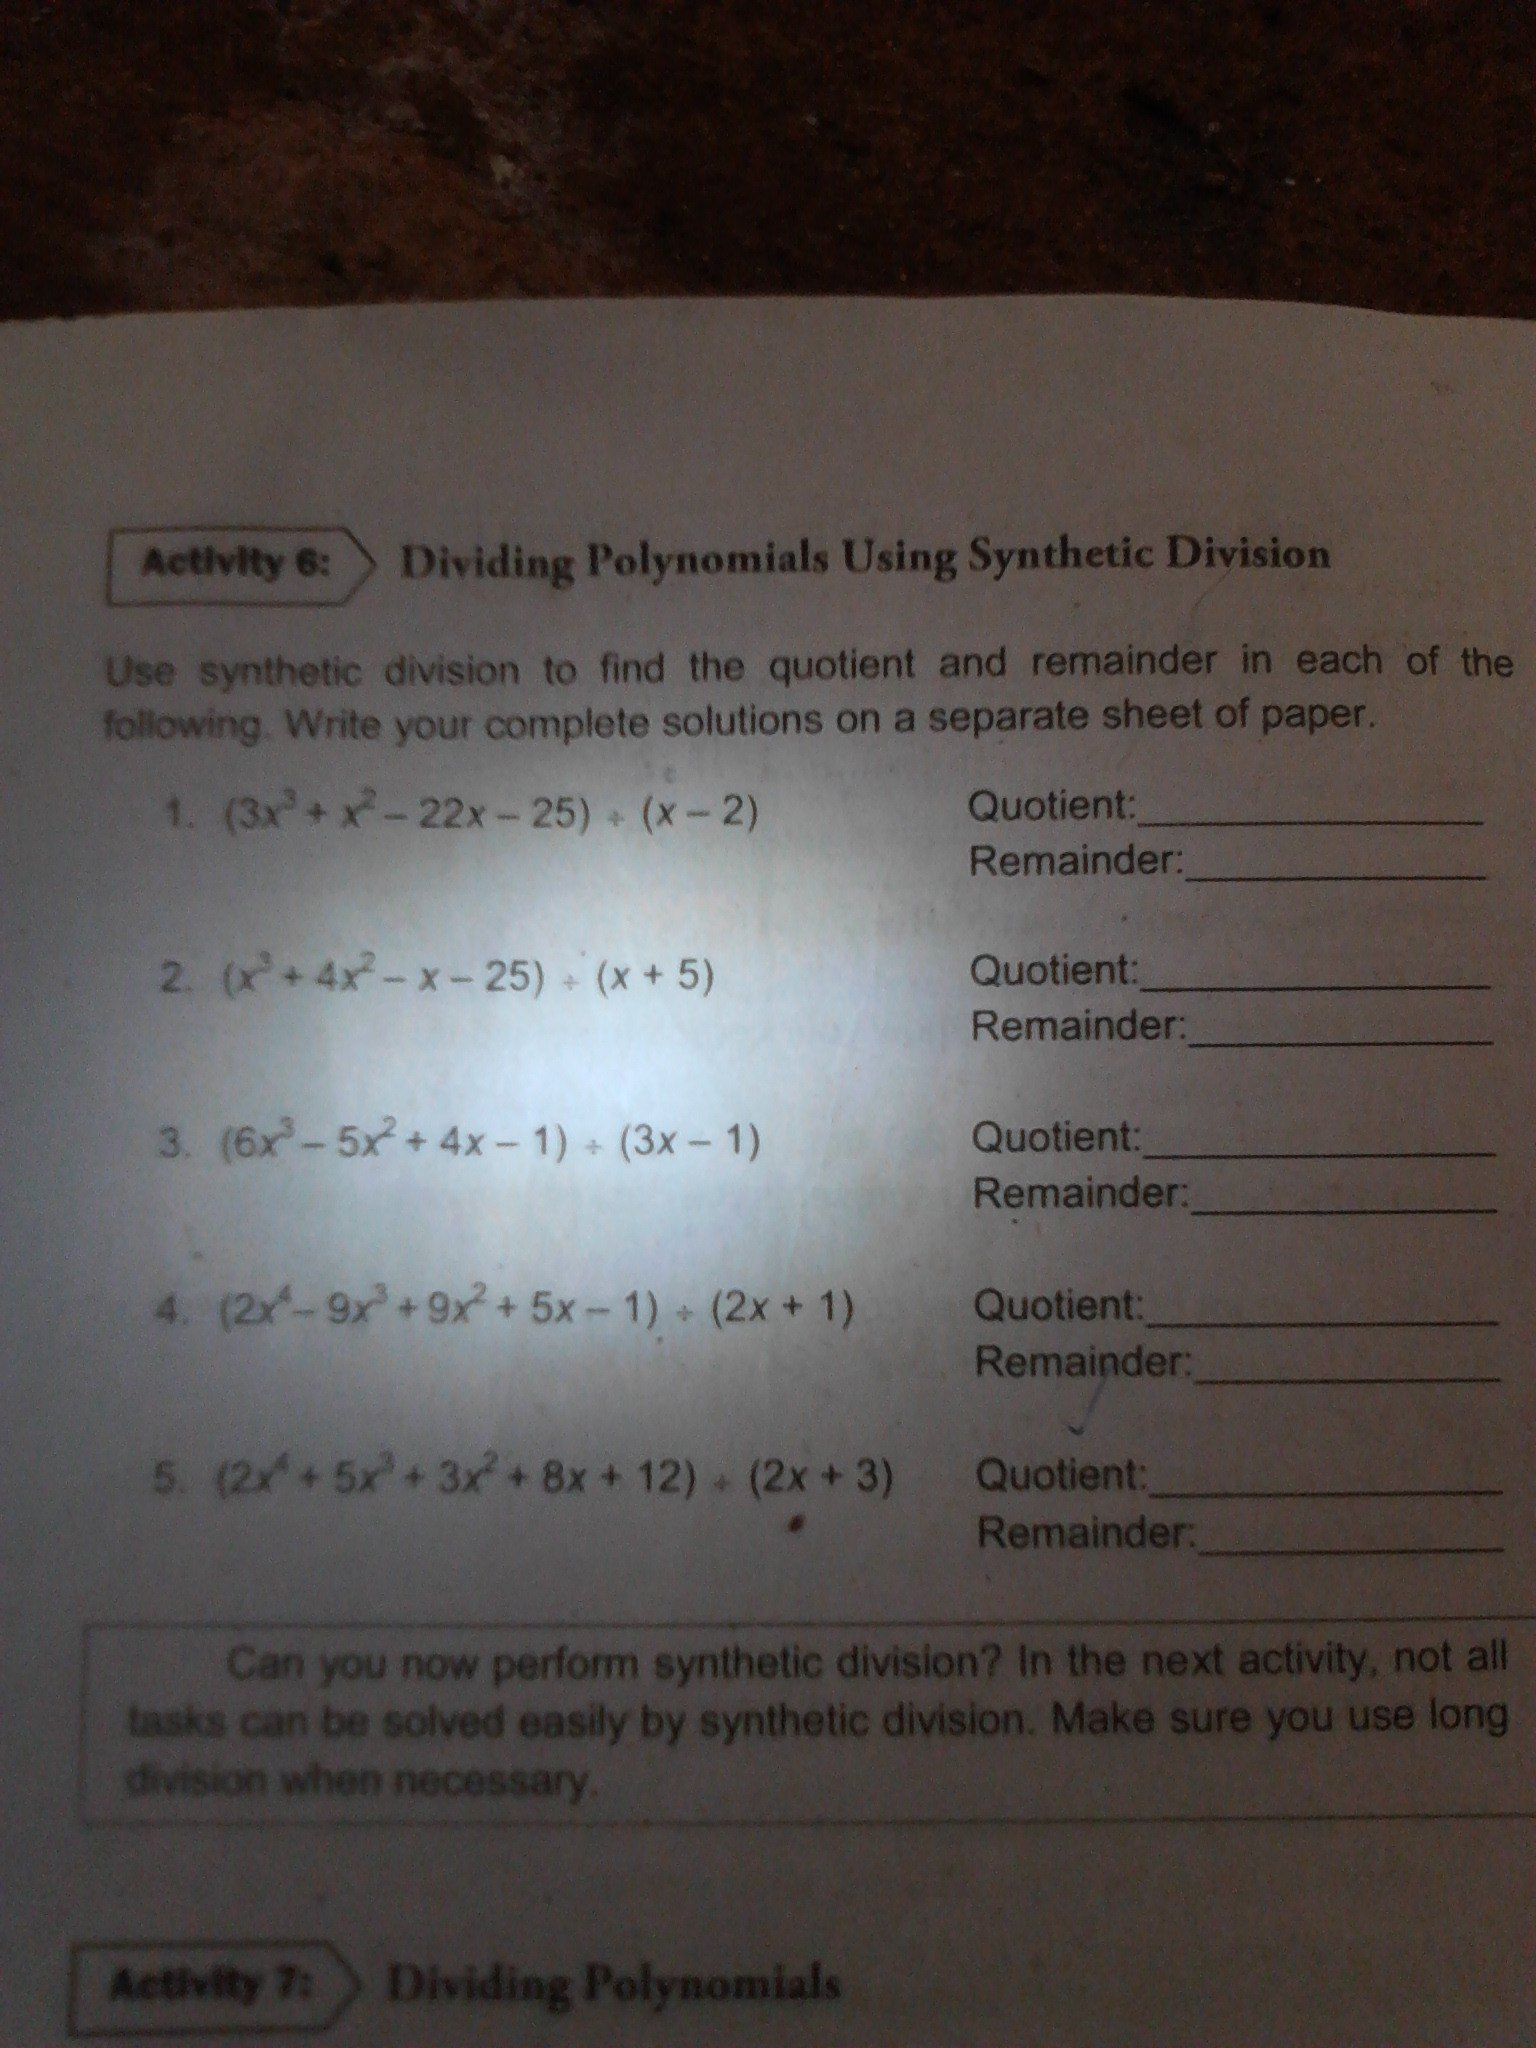 Activity 6 Dividing Polynomials Using Synthetic Division